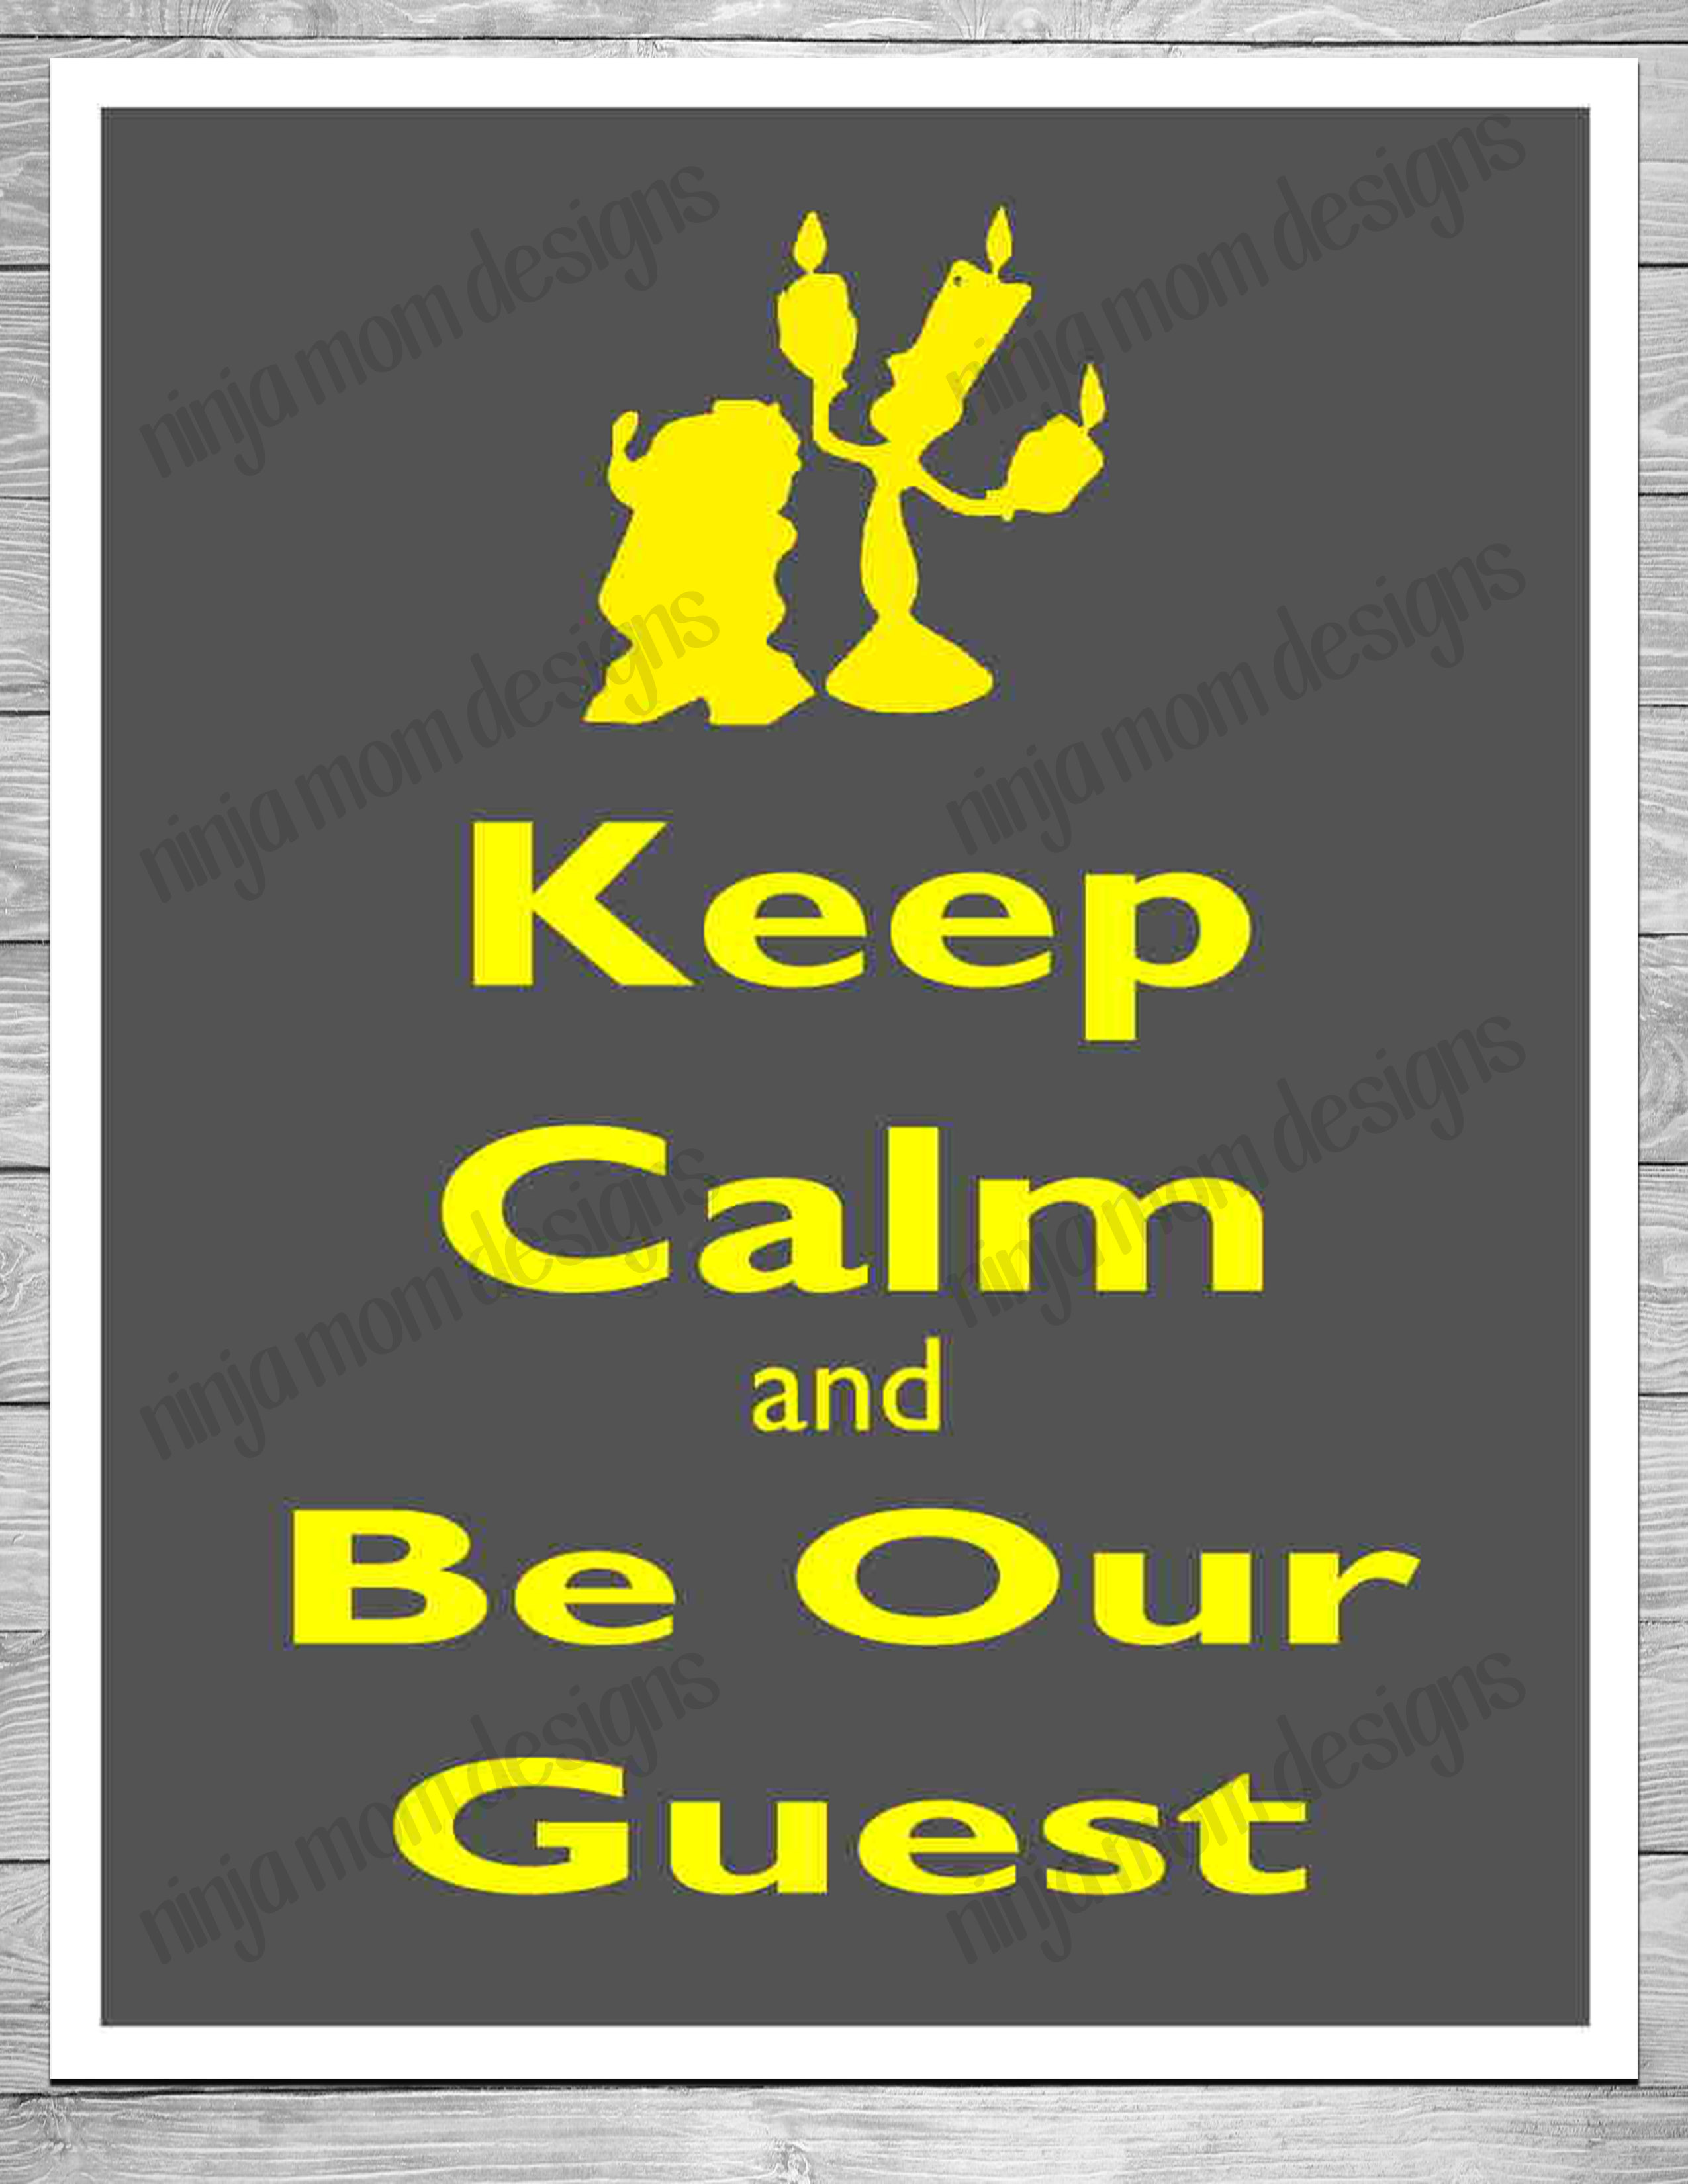 photograph about Be Our Guest Printable named Totally free Preserve Tranquil and Be Our Visitor Printable